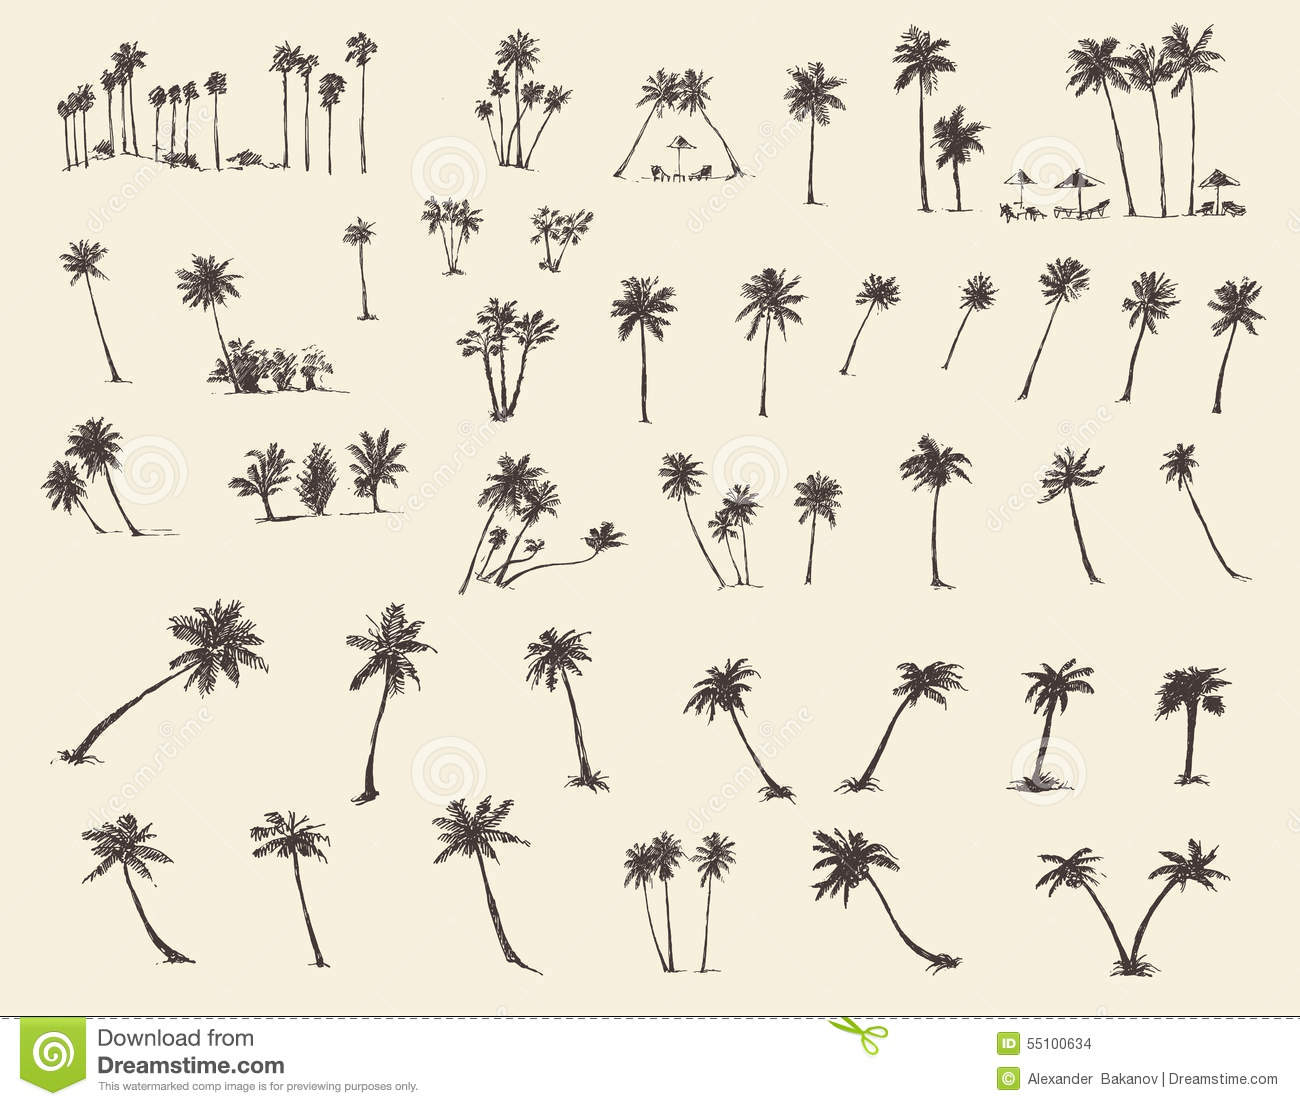 How To Draw A Palm Tree On The Beach